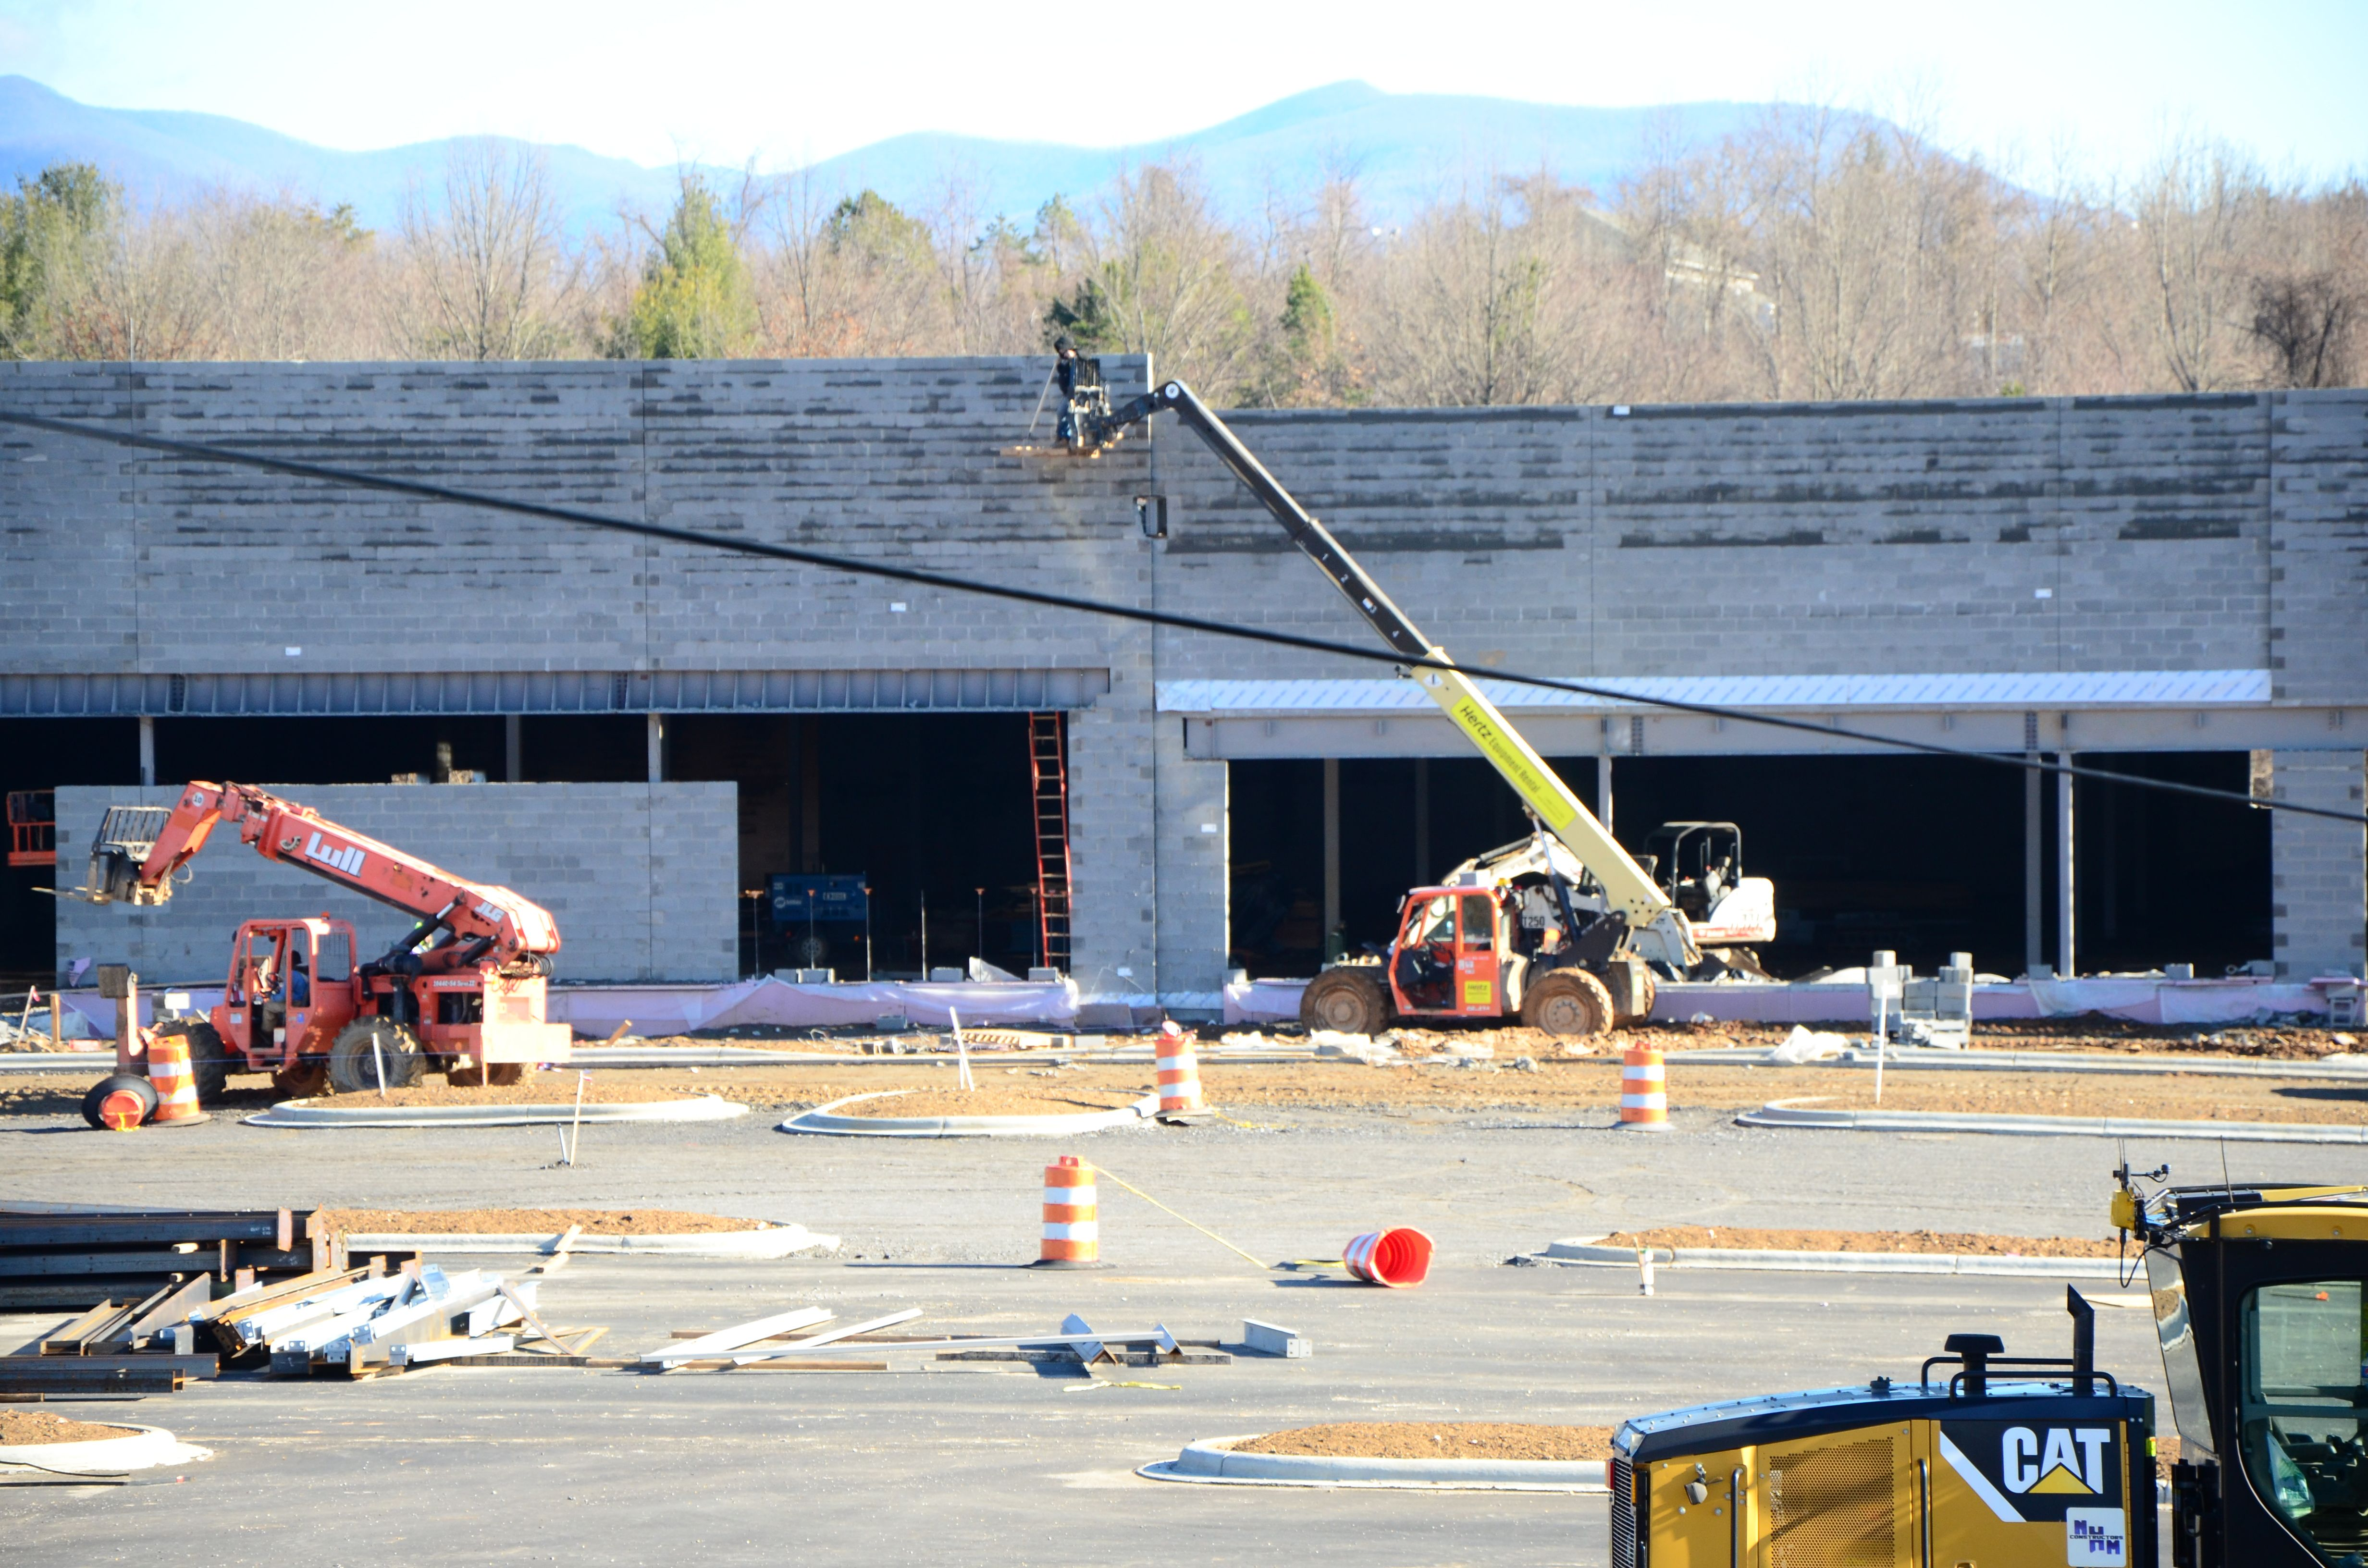 PHOTOS: New Belgium and Whole Foods construction sites in Asheville